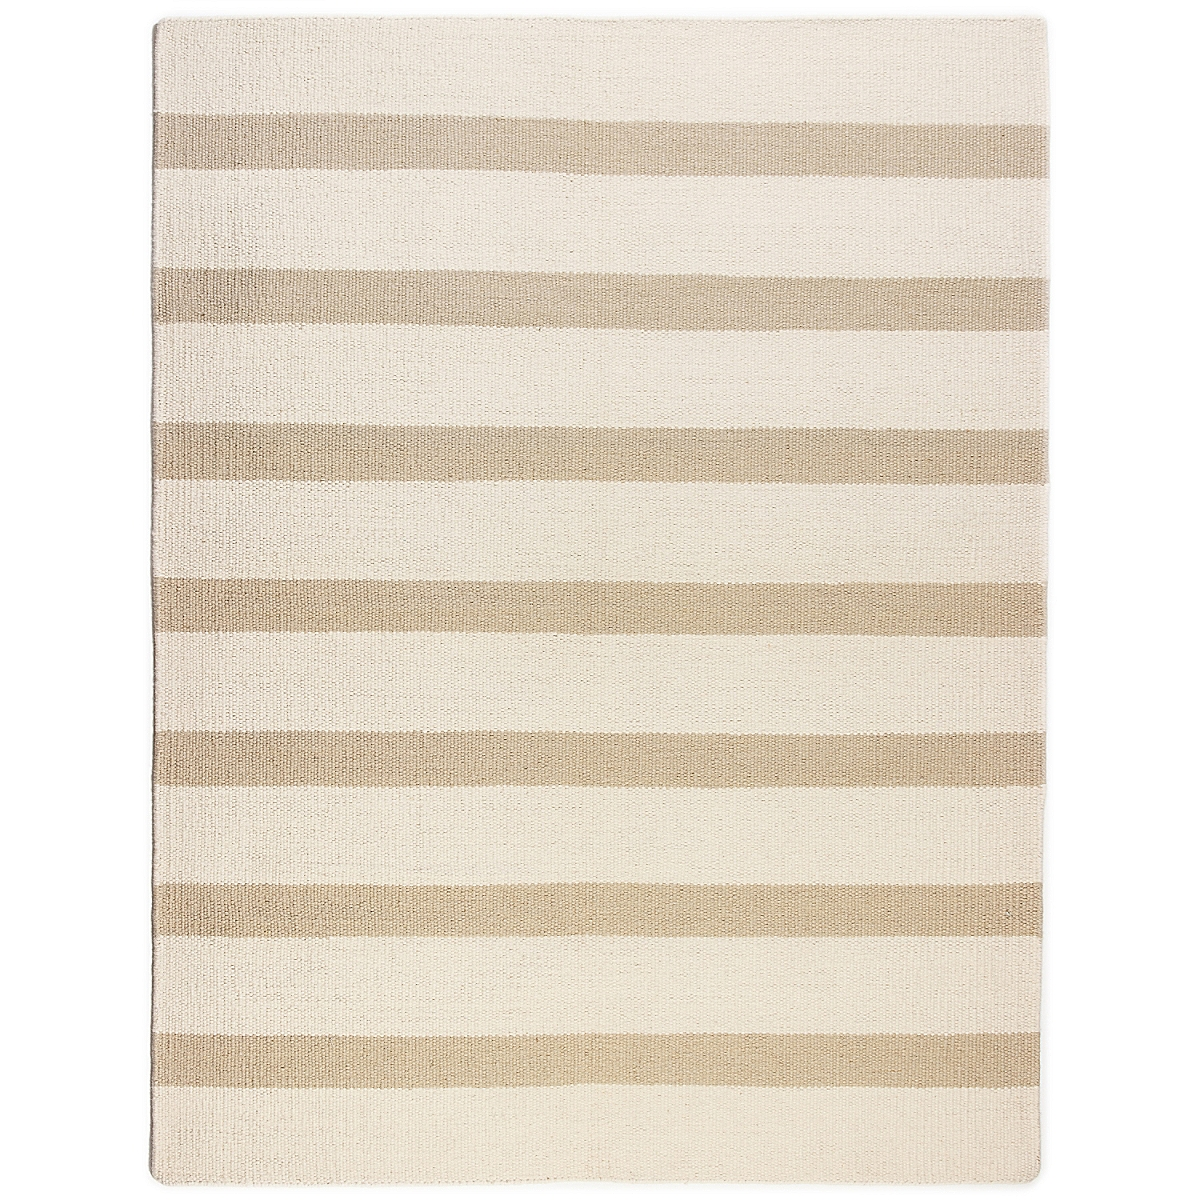 Cockspur Island Wool Berber Striped Rug